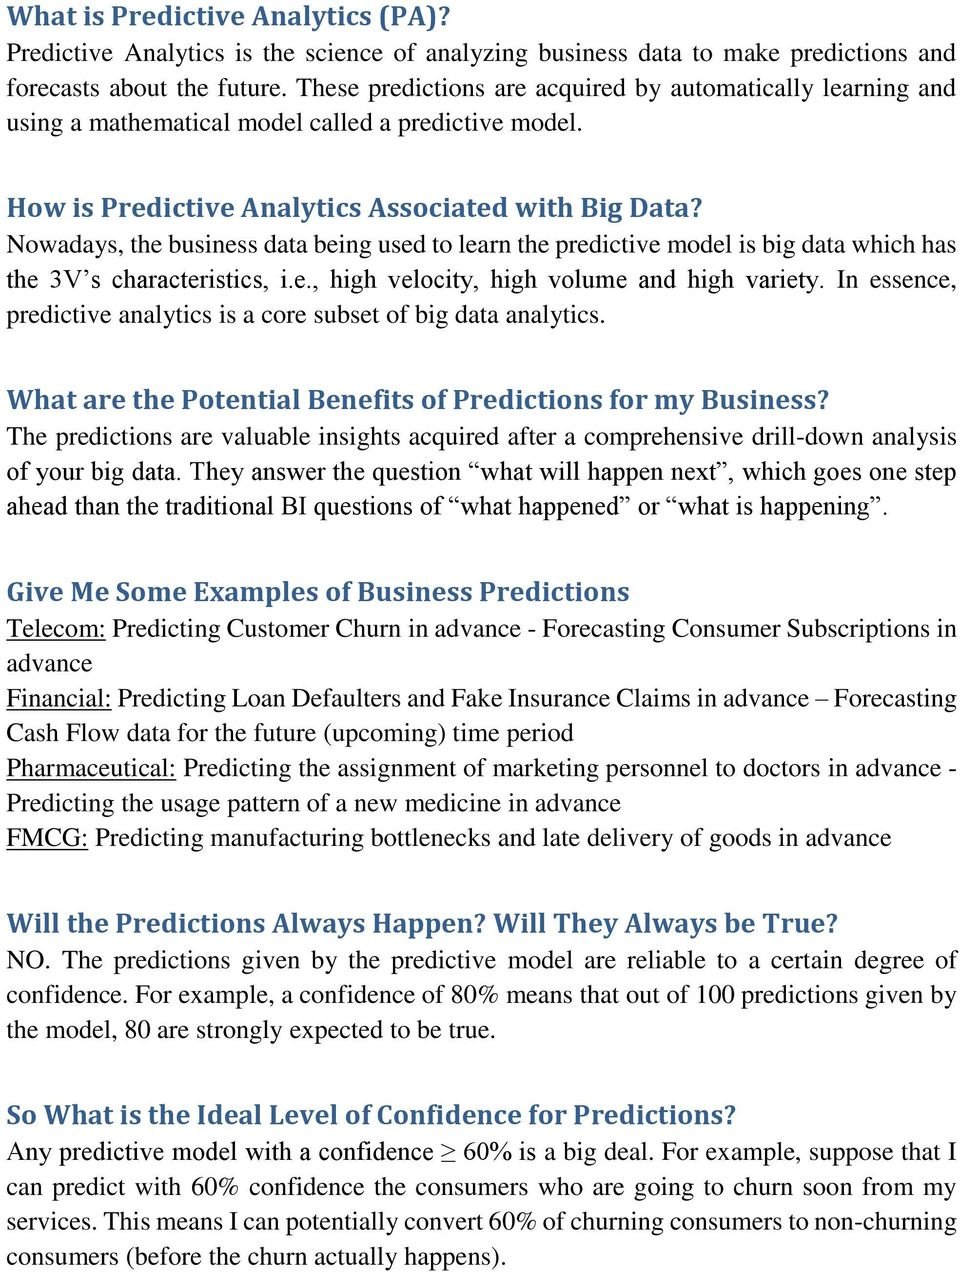 Nowadays, the business data being used to learn the predictive model is big data which has the 3V s characteristics, i.e., high velocity, high volume and high variety.